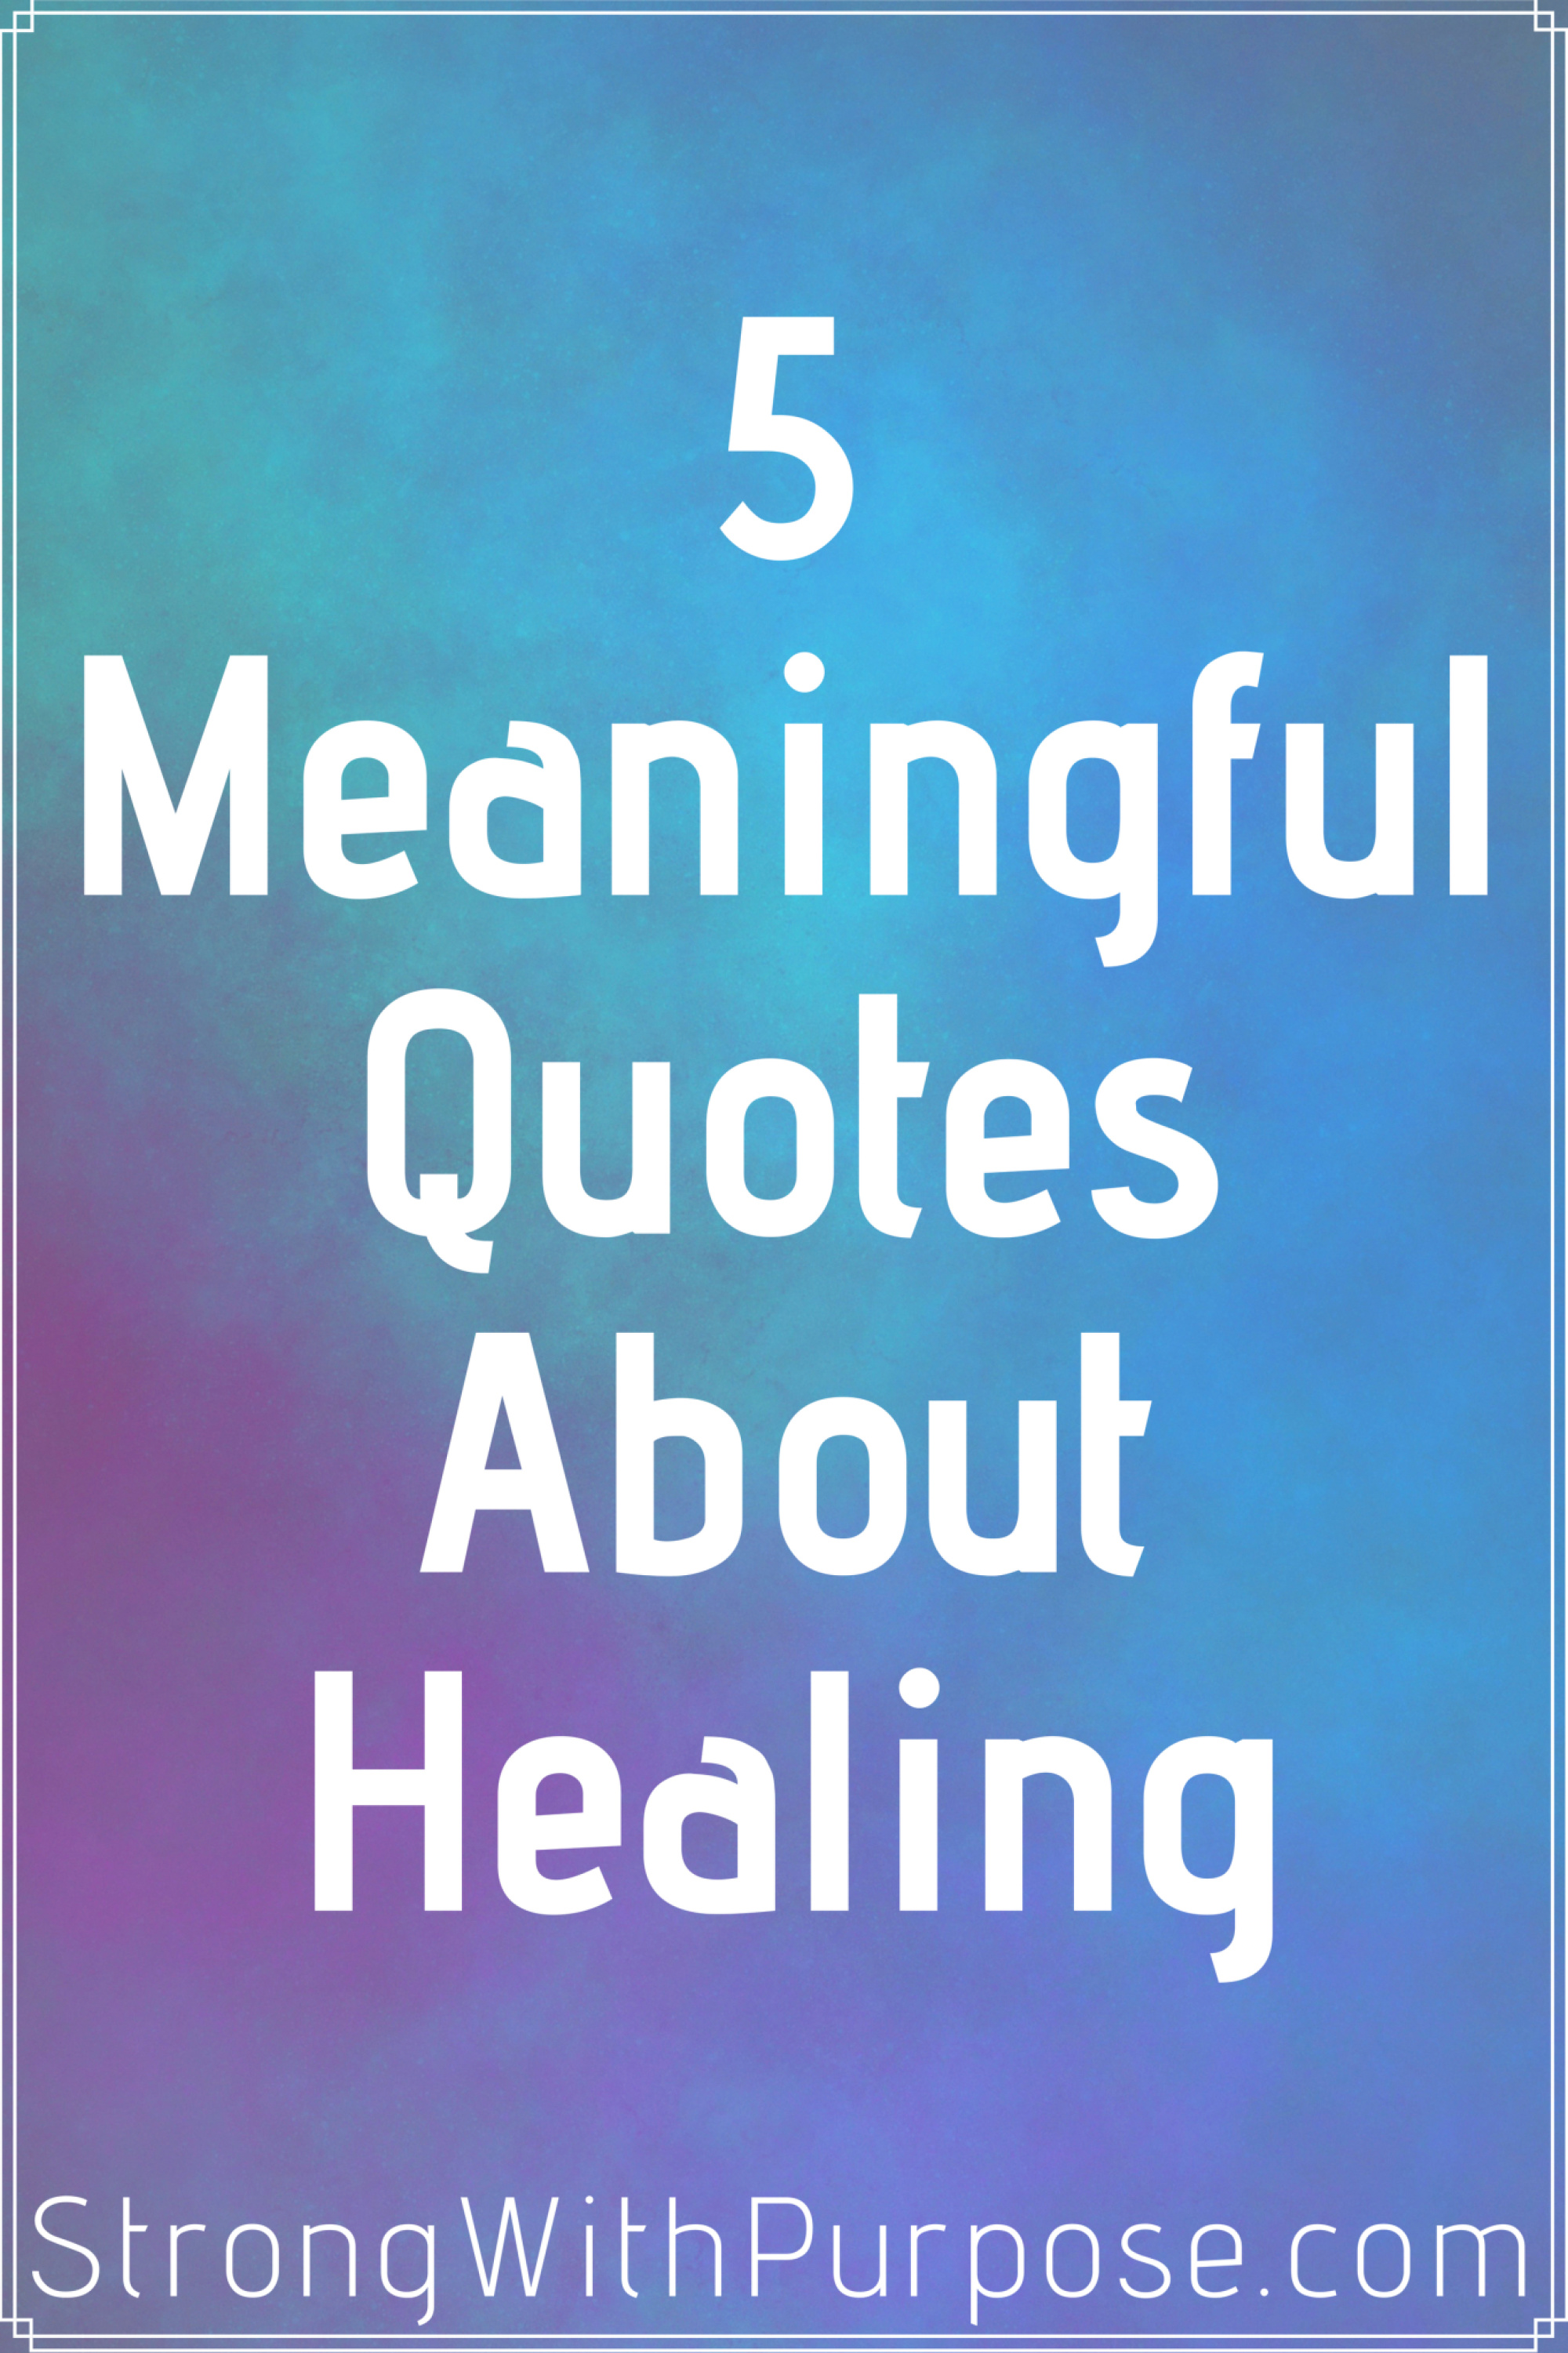 quotes healing meaningful strong purpose hope path